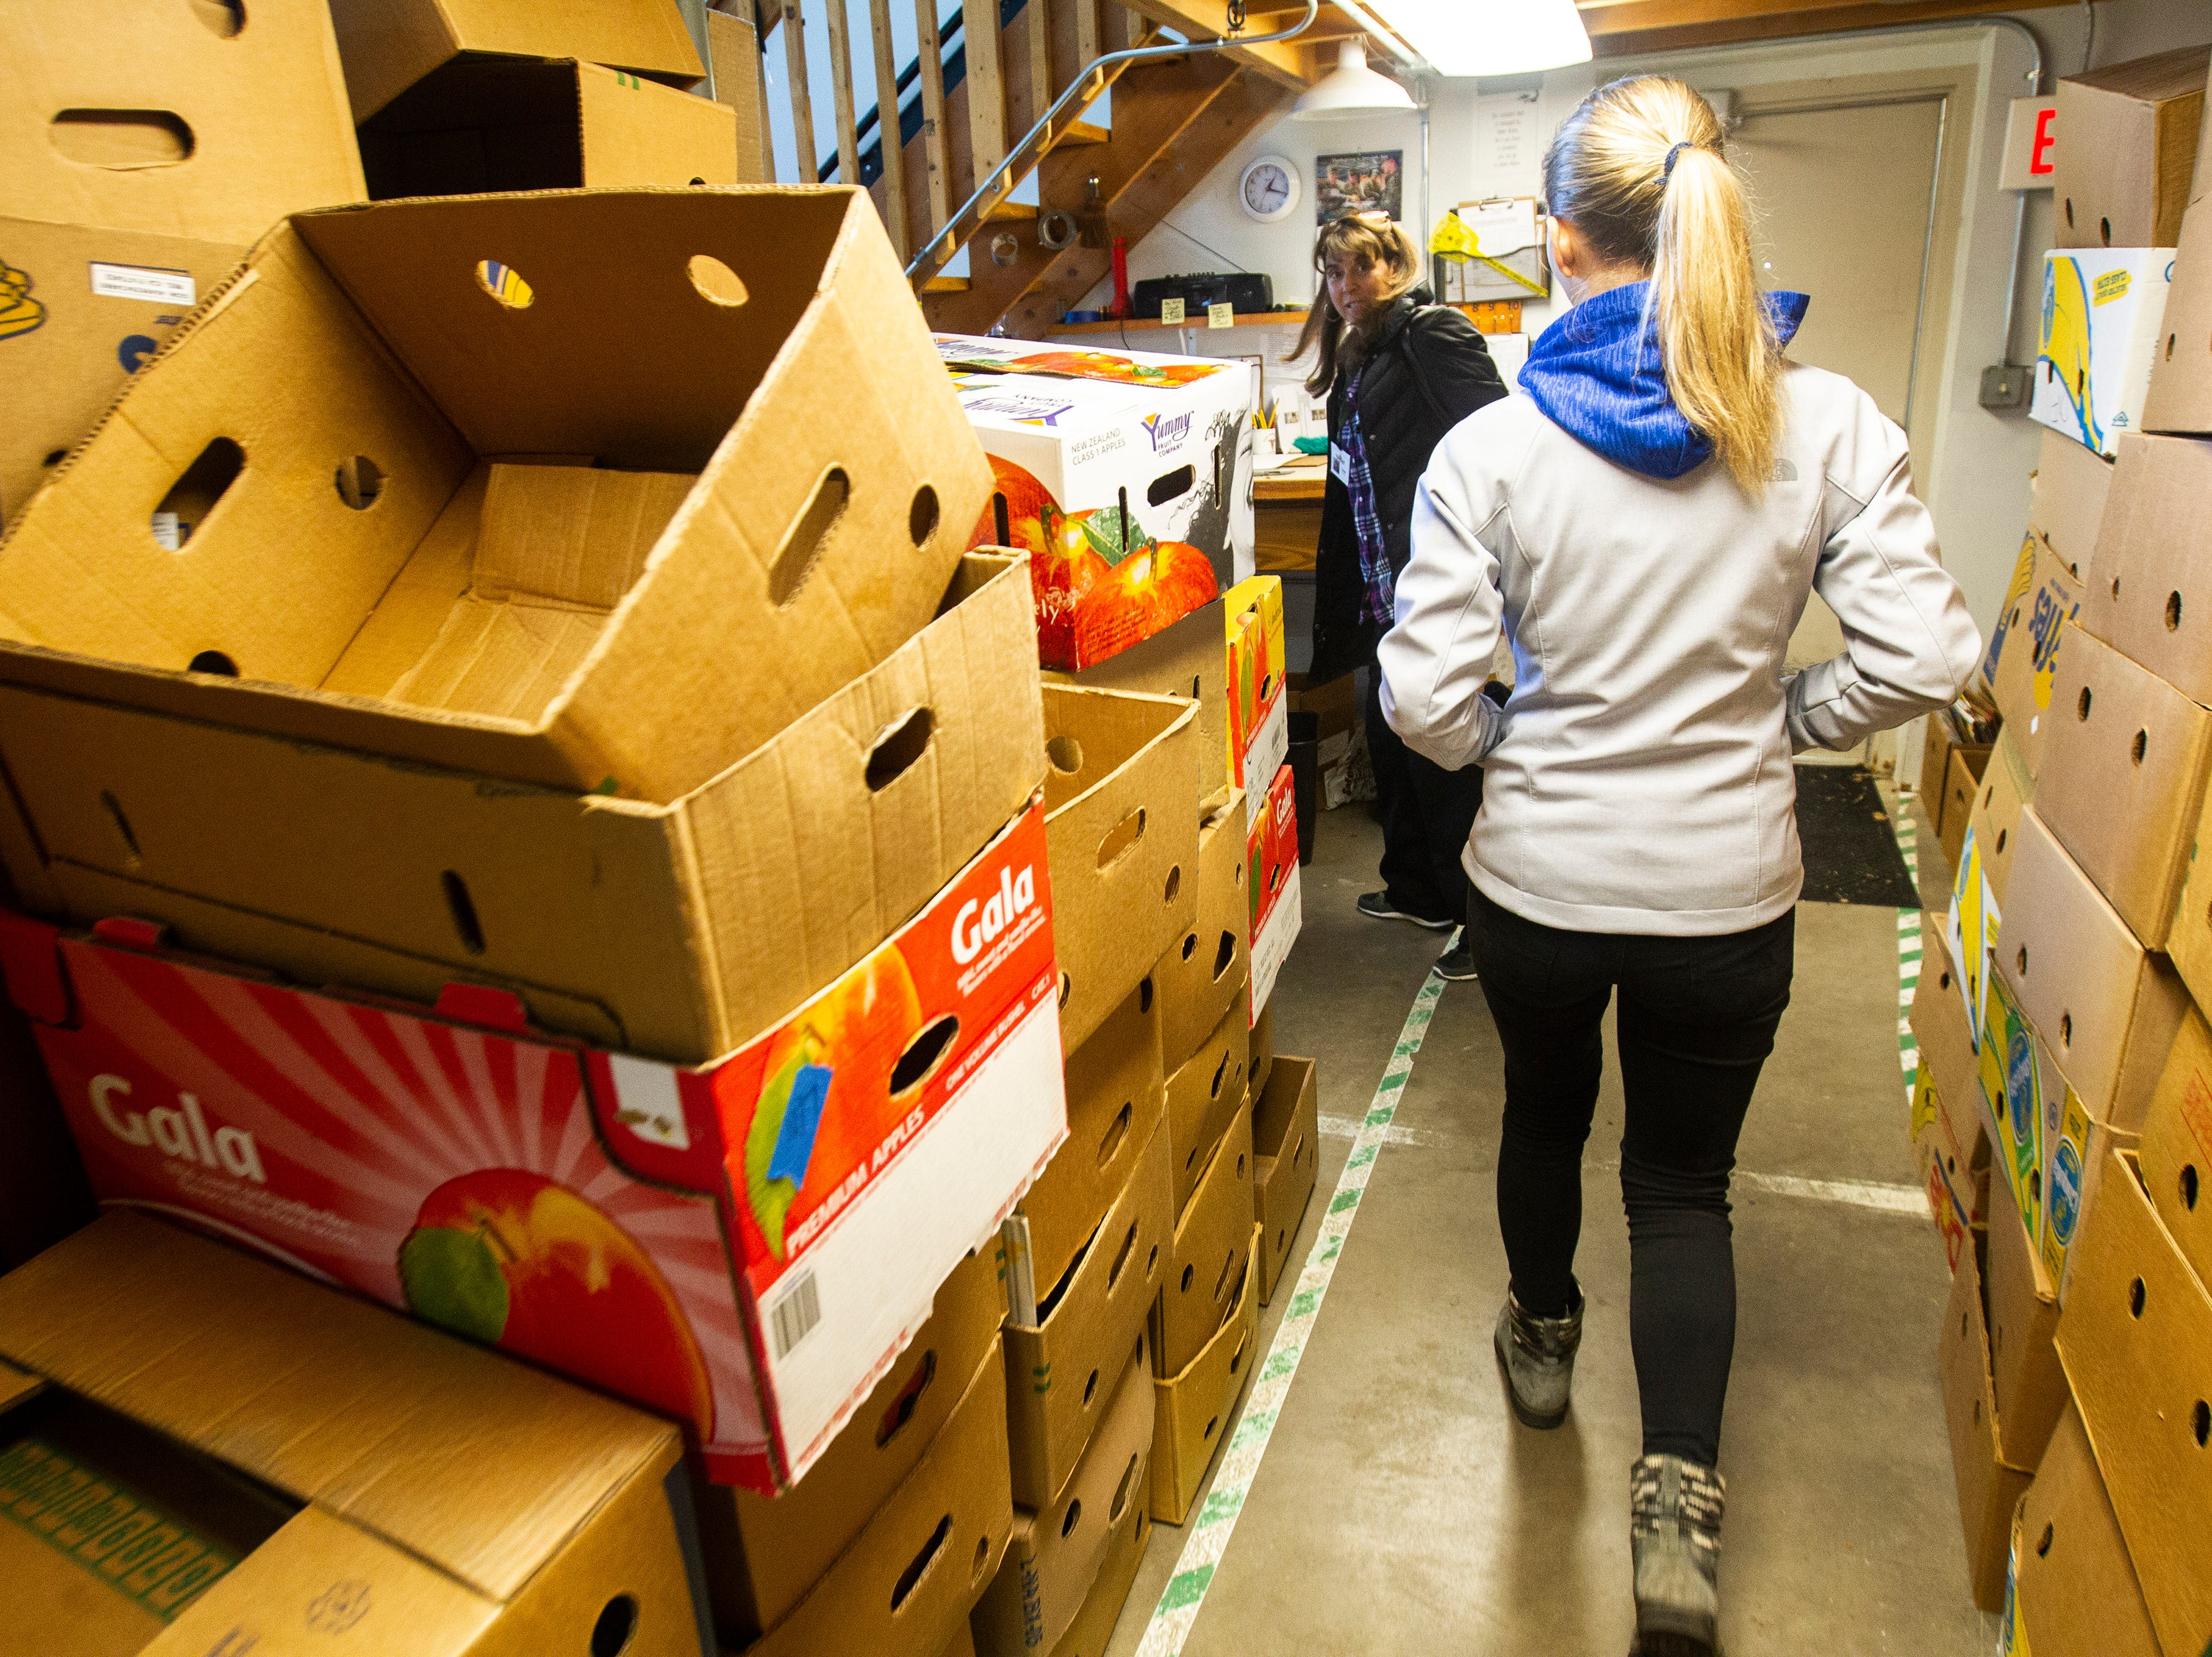 Table to Table volunteers Tatum Nass, right, and Lisa Dutchik walk through a back room filled with cardboard boxes before heading out on their afternoon route on Thursday, Nov. 15, 2018, at the Table to Table offices in Iowa City. Nass is a University of Iowa freshman studying biology and Dutchik is a lecturer in the Tippie College of Business.